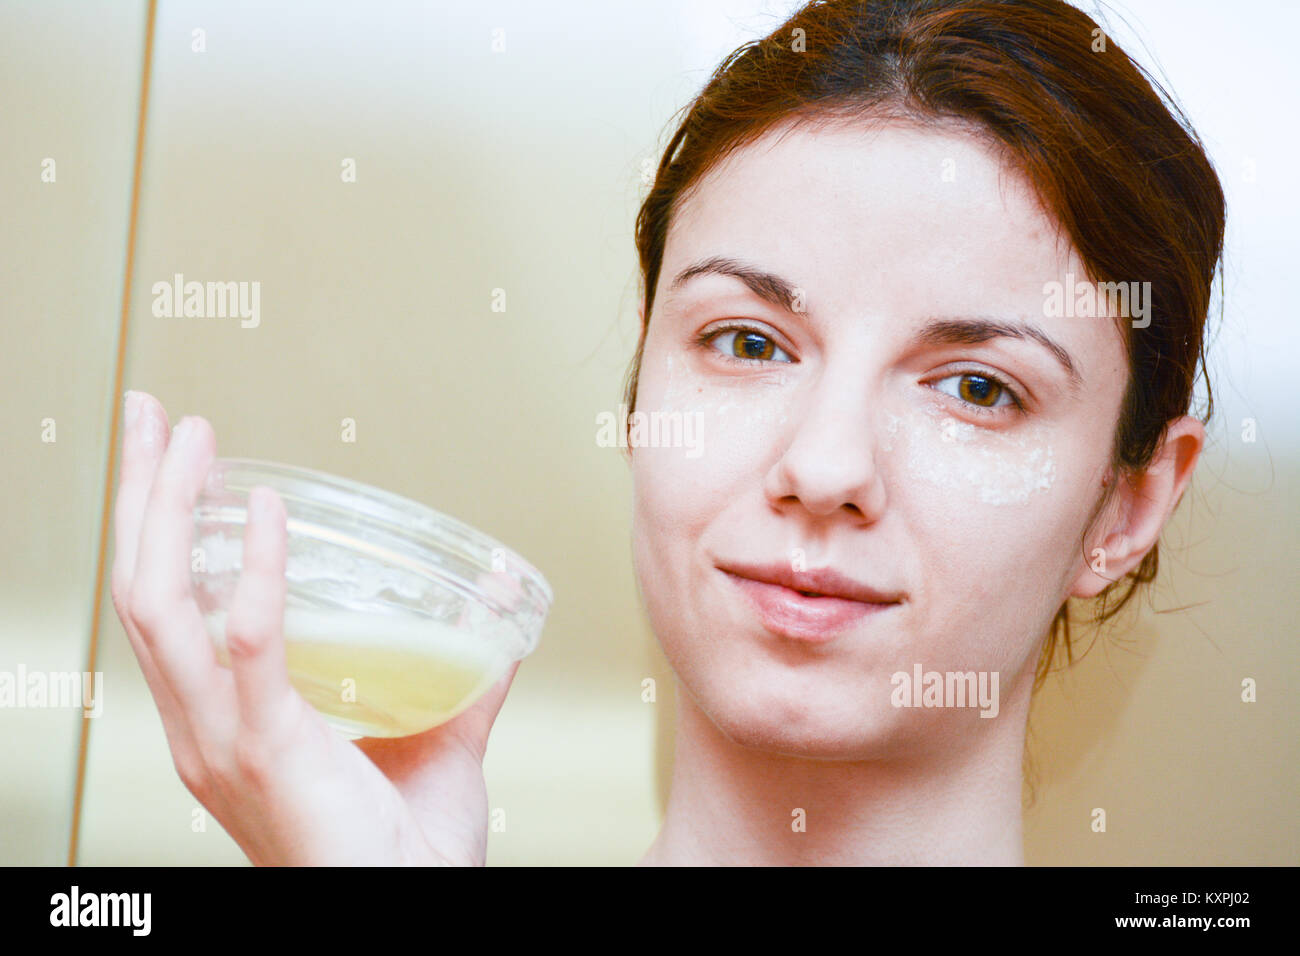 Puffy Eyes Stock Photos & Puffy Eyes Stock Images - Alamy